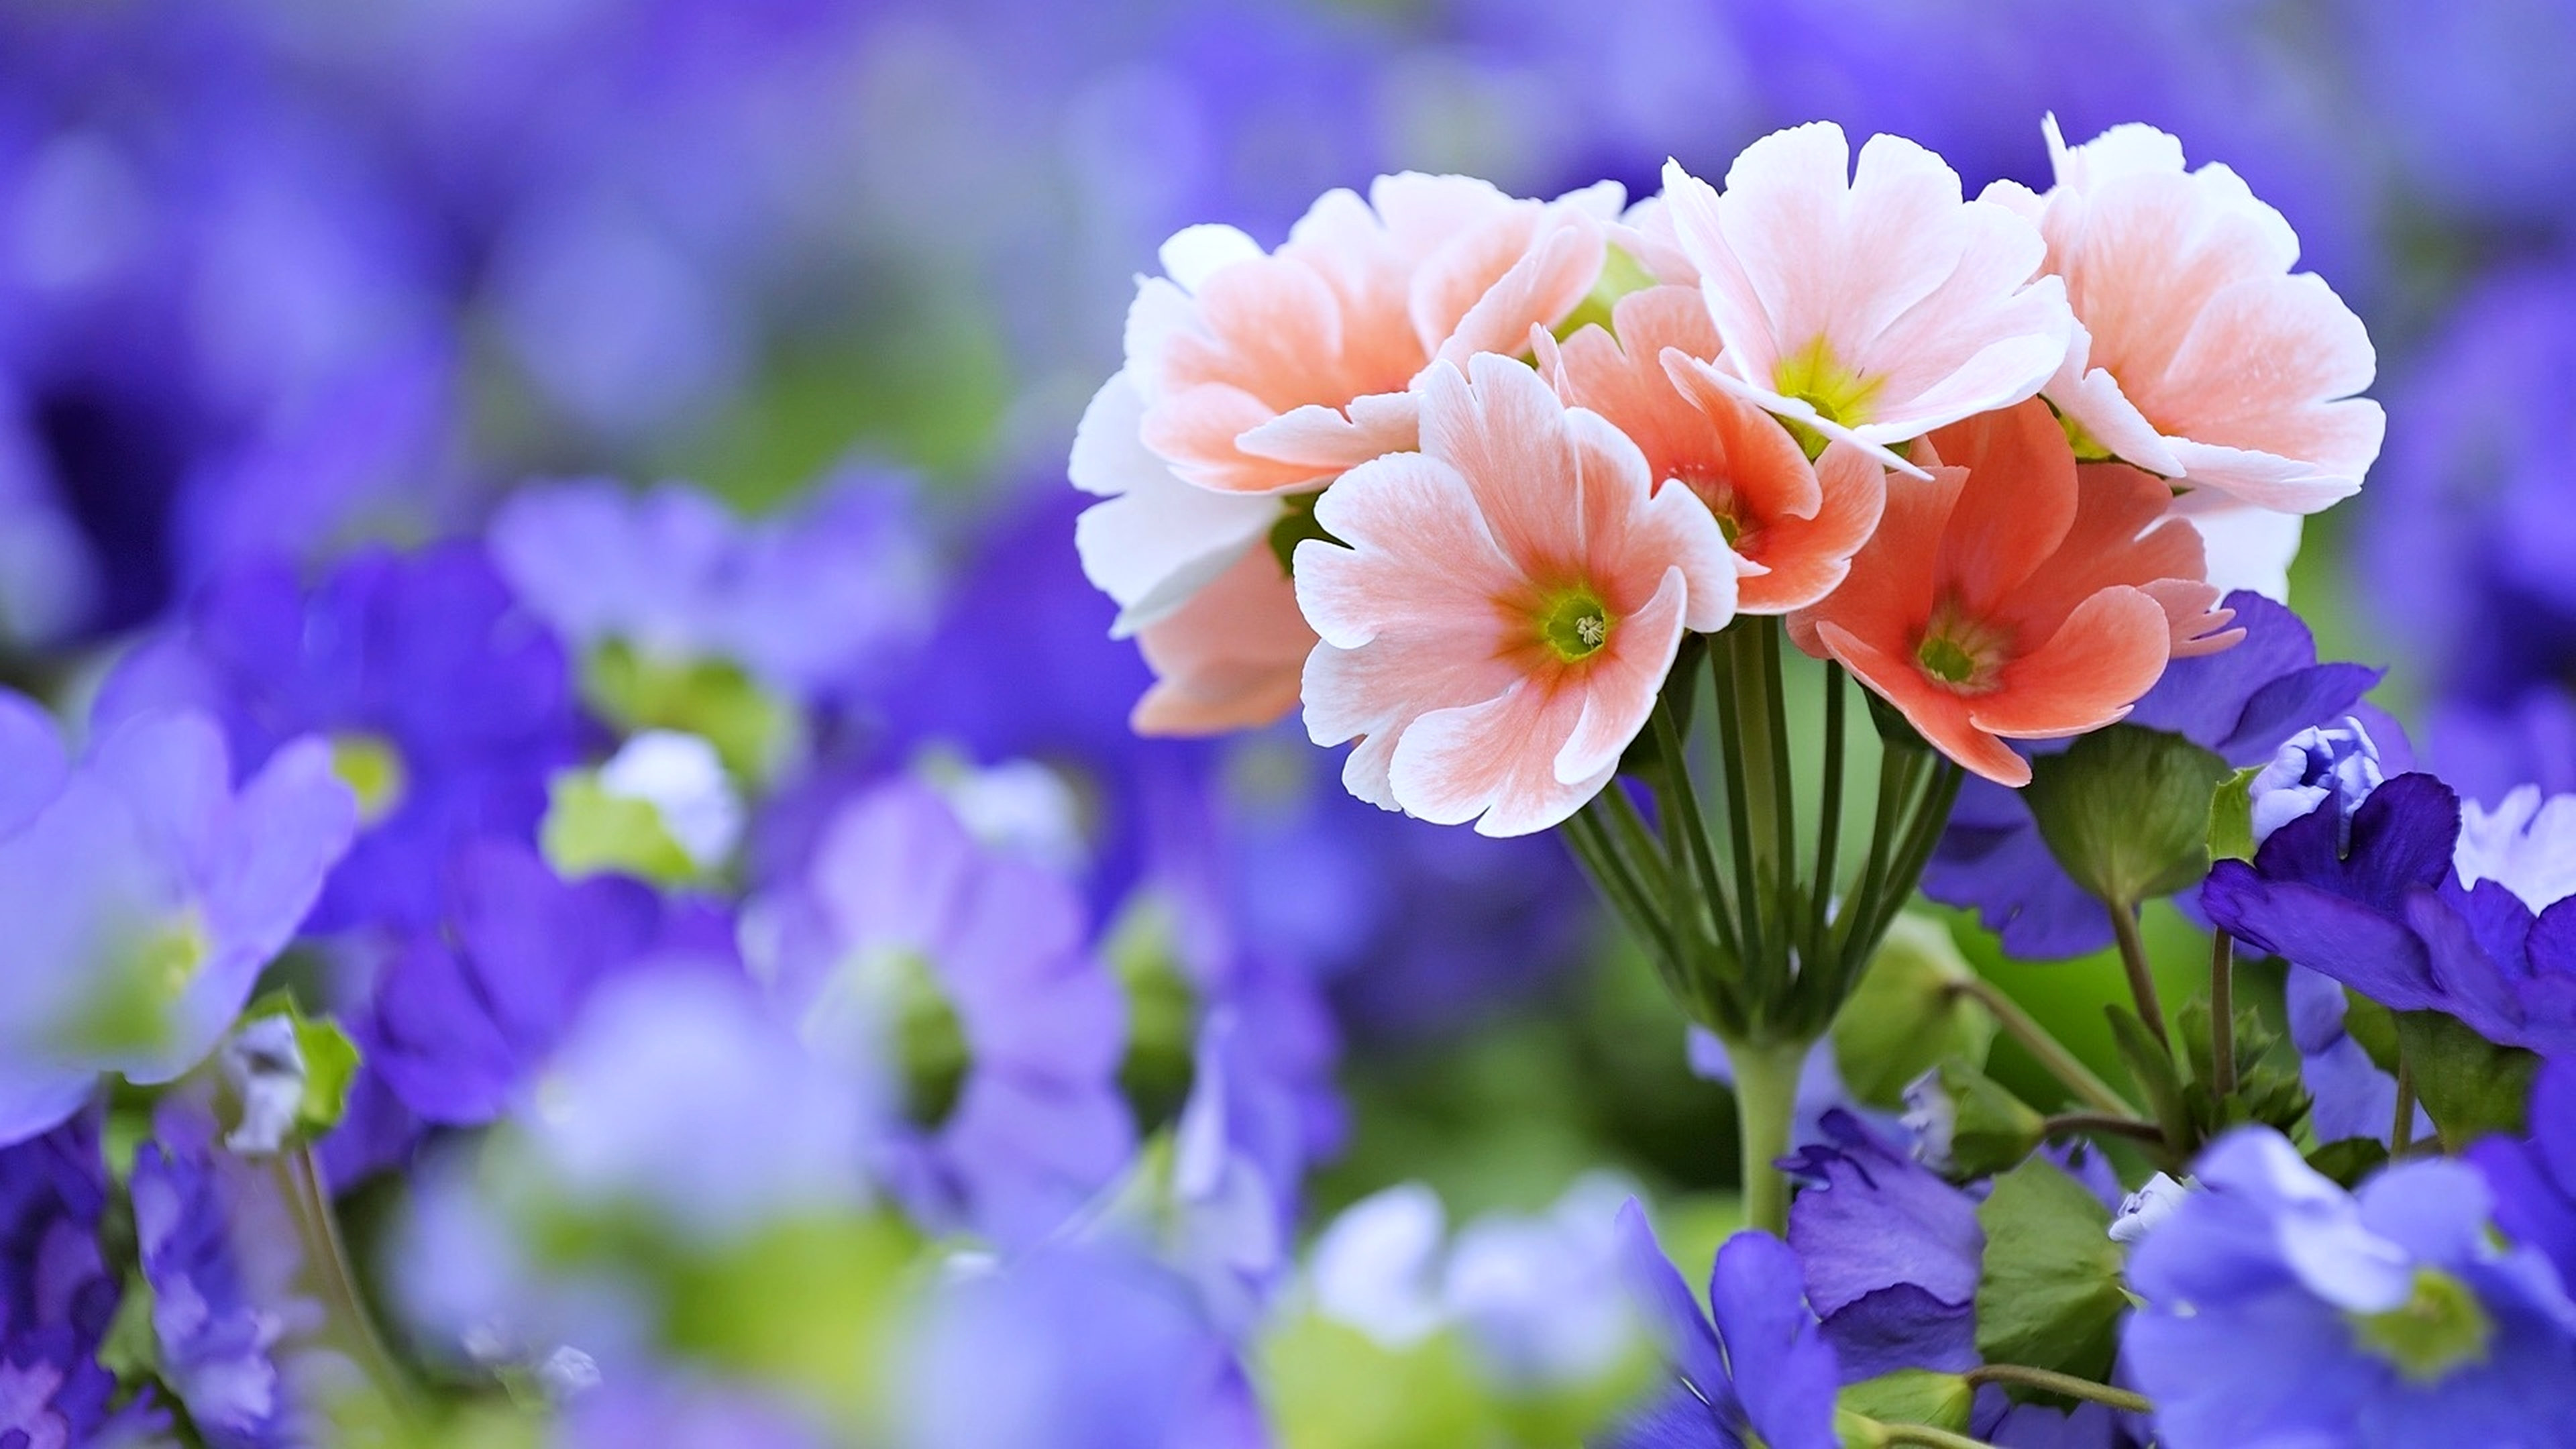 Beautiful Flowers 4k Wallpaper 3840x2160